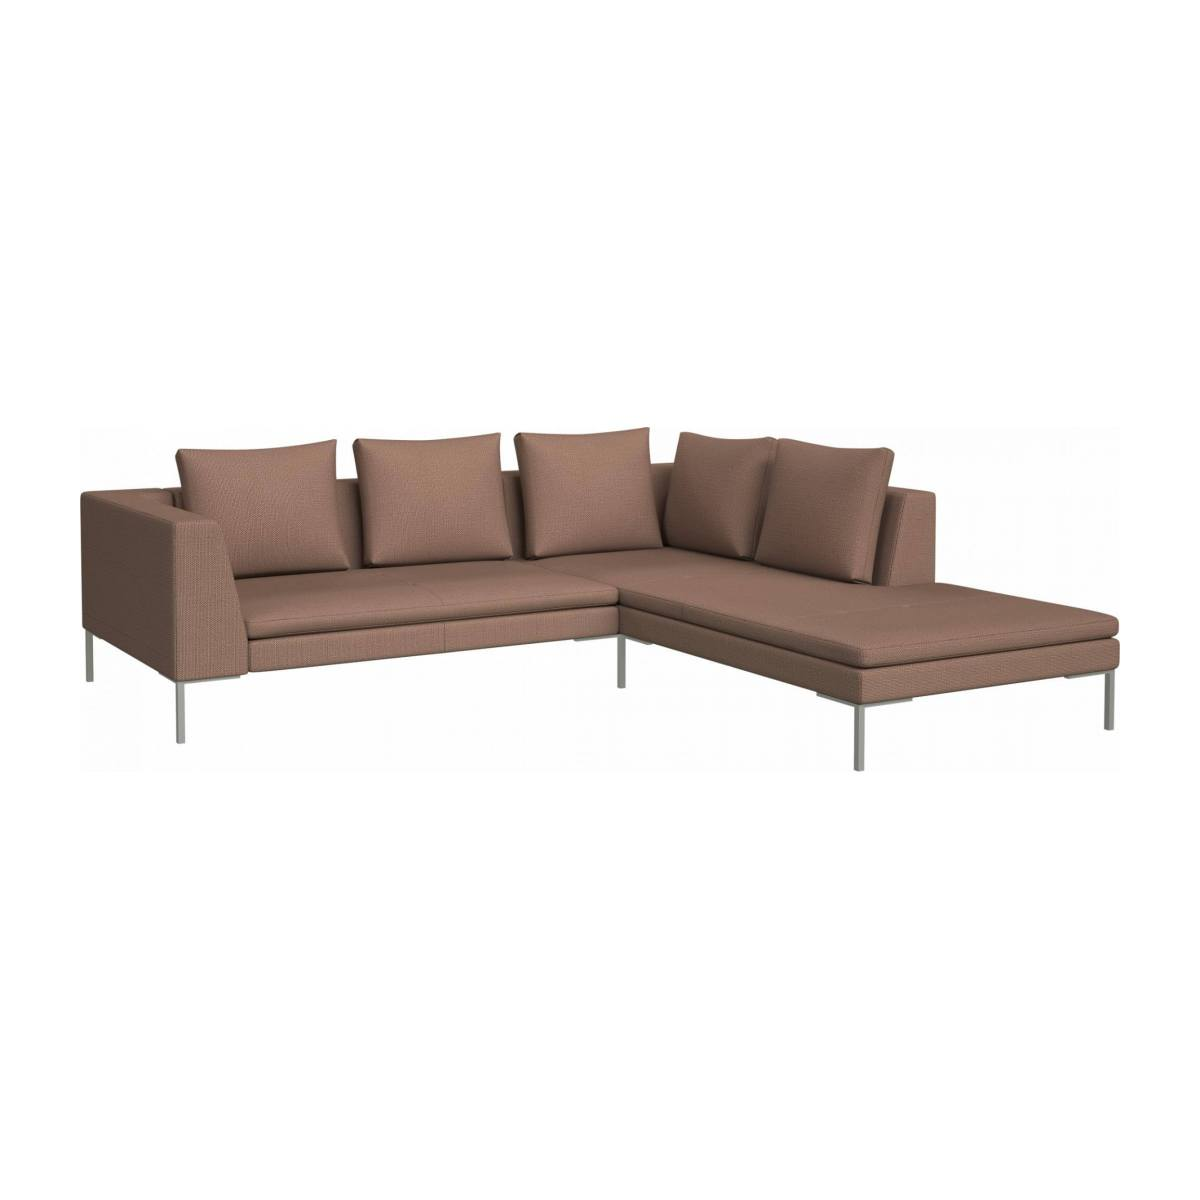 2 seater sofa with chaise longue on the right in Fasoli fabric, jatoba brown  n°2